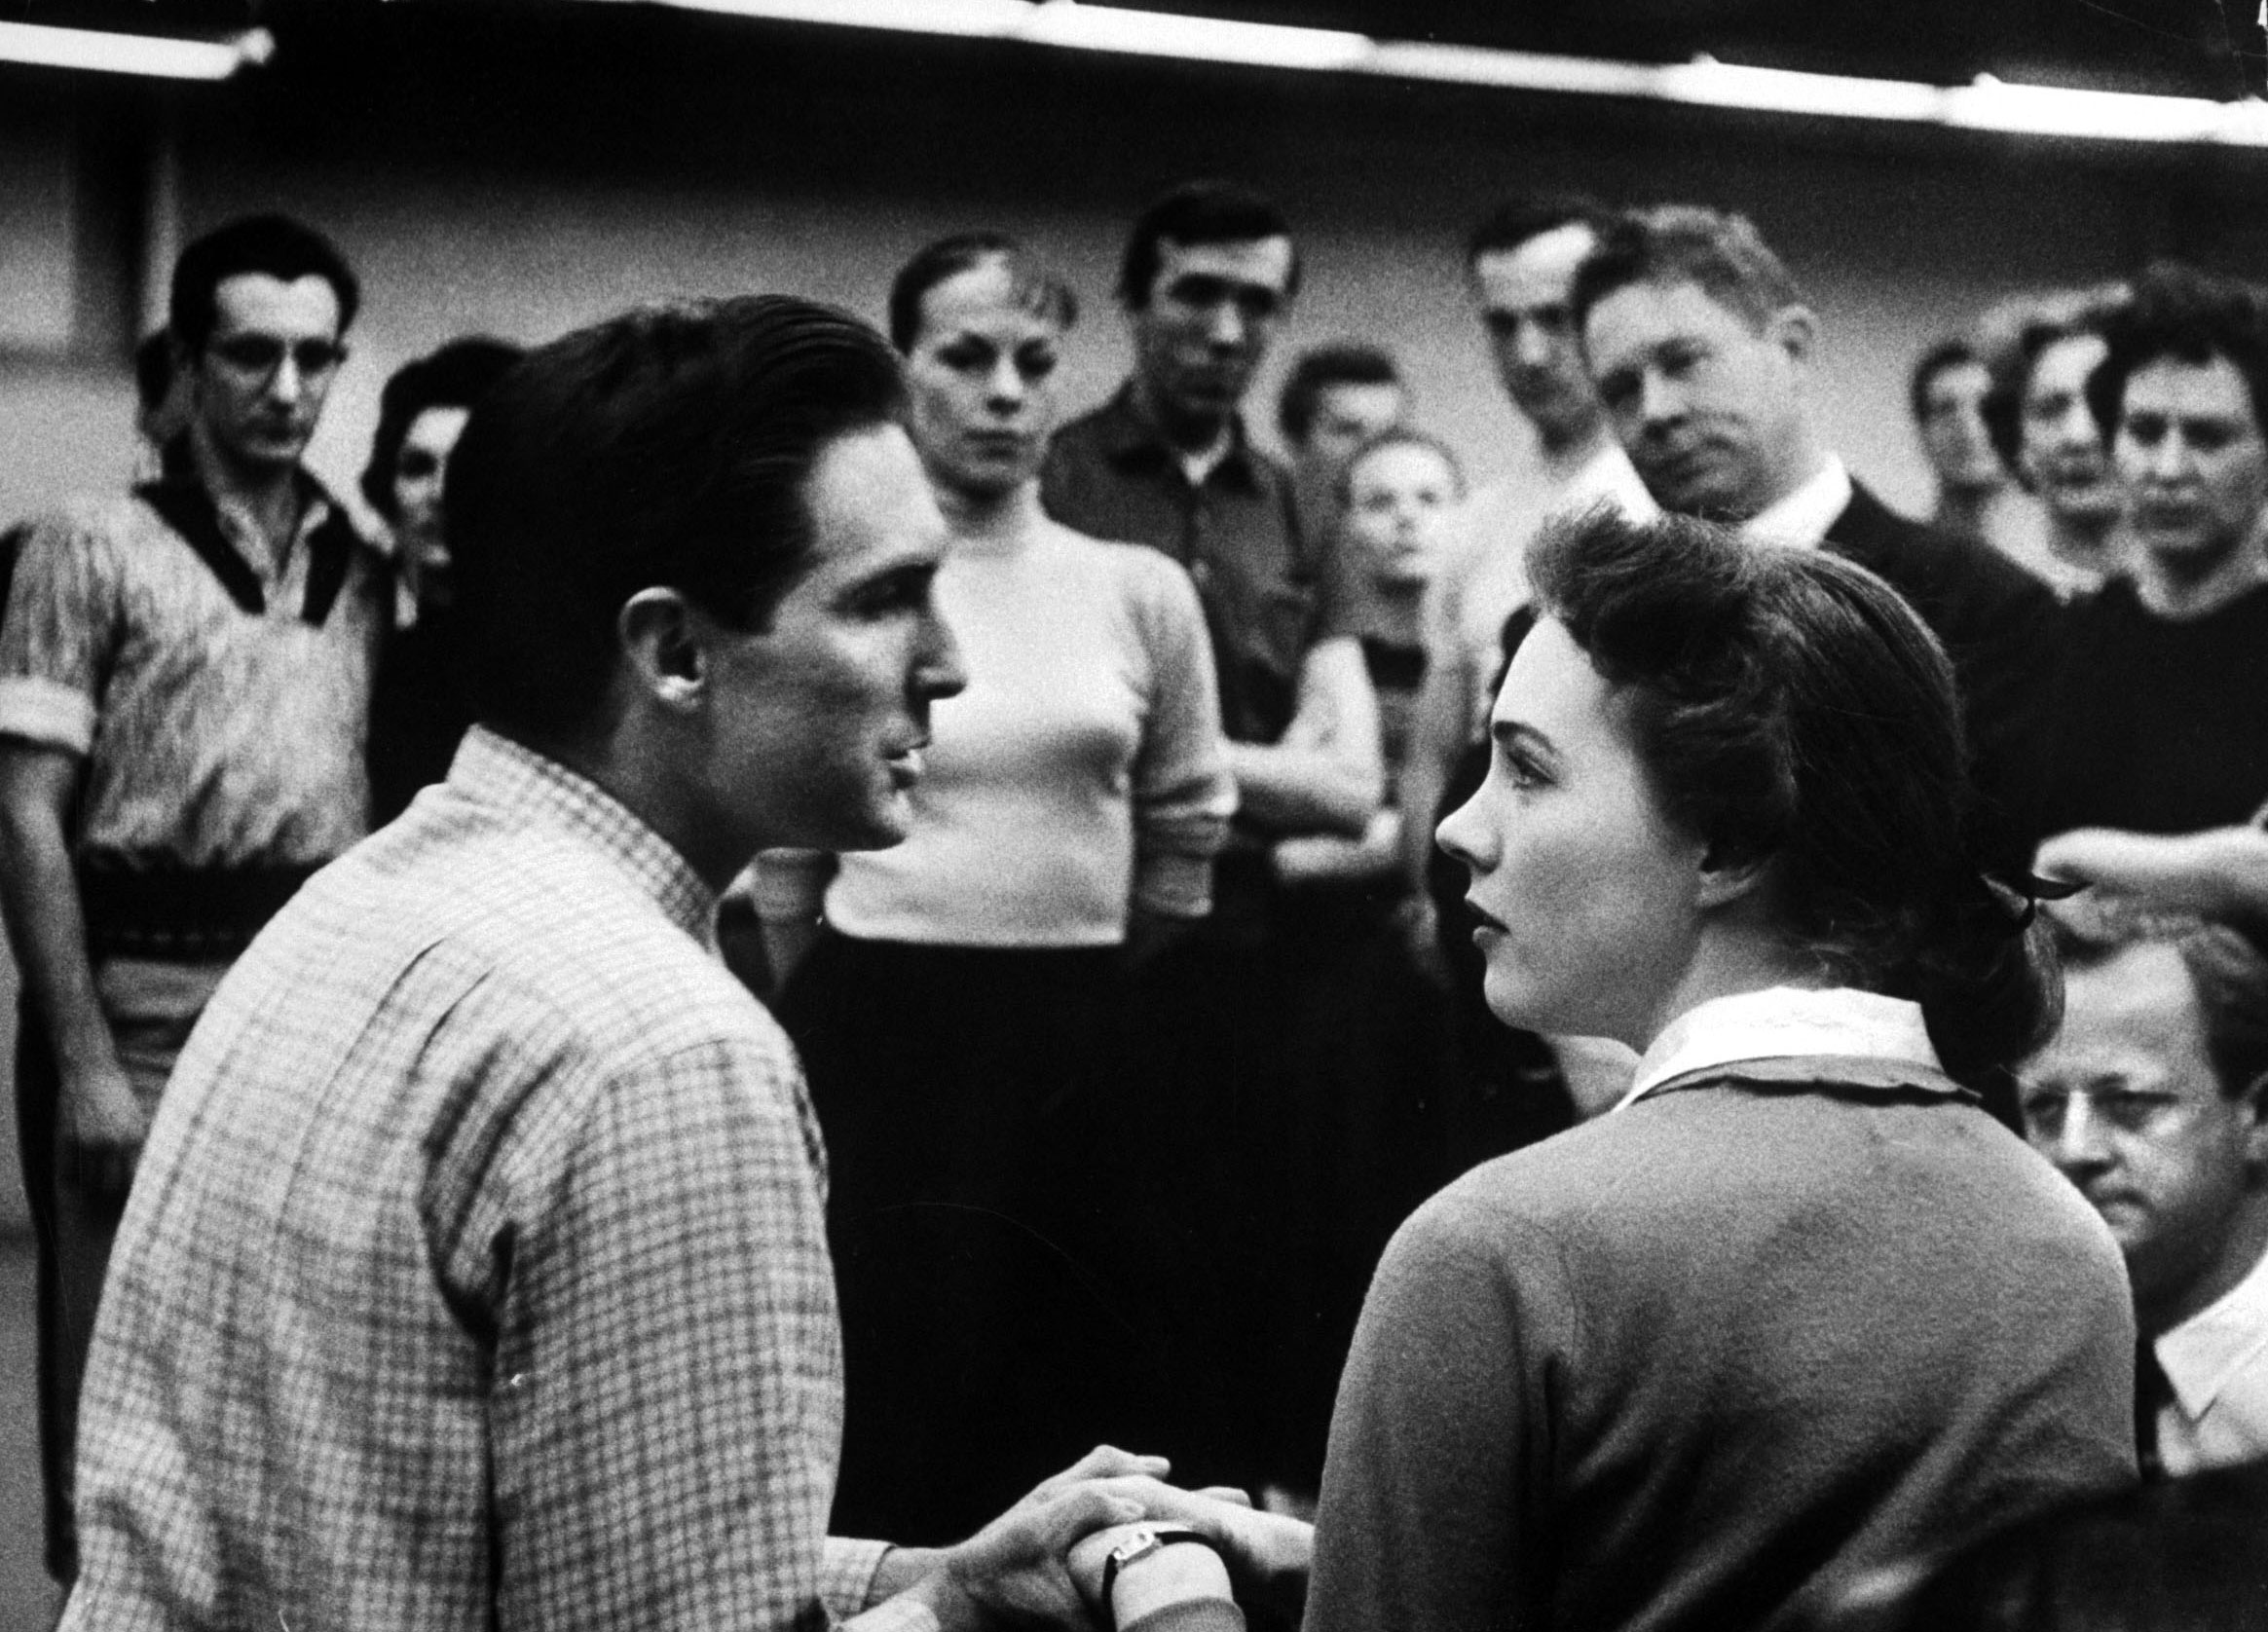 Julie Andrews and  Jon Cypher rehearsing music for the TV production of Cinderella.